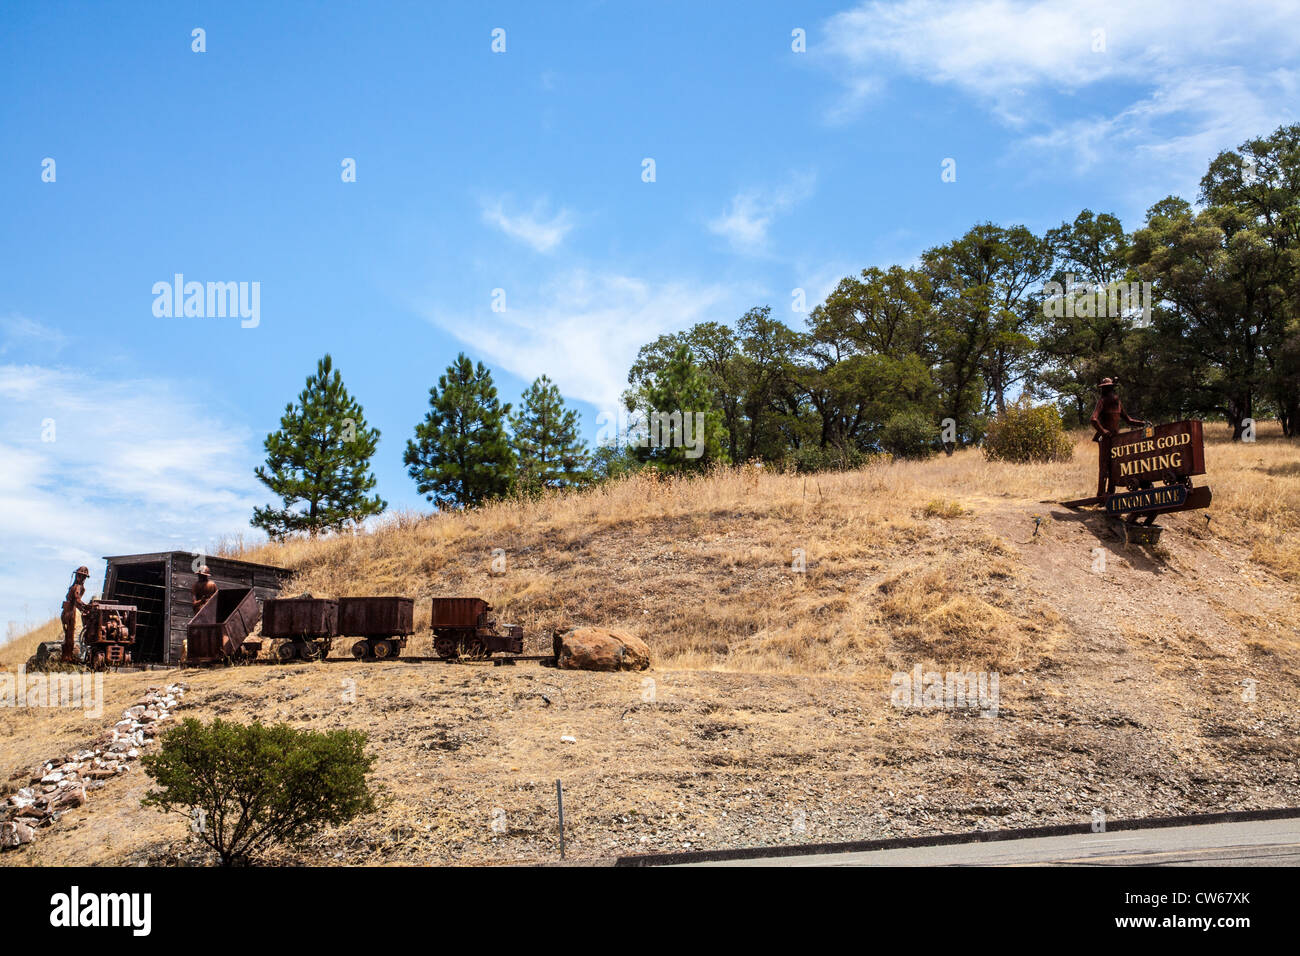 An Old Timey mining display on the Highway at Sutter Creek California in the Gold Rush country - Stock Image